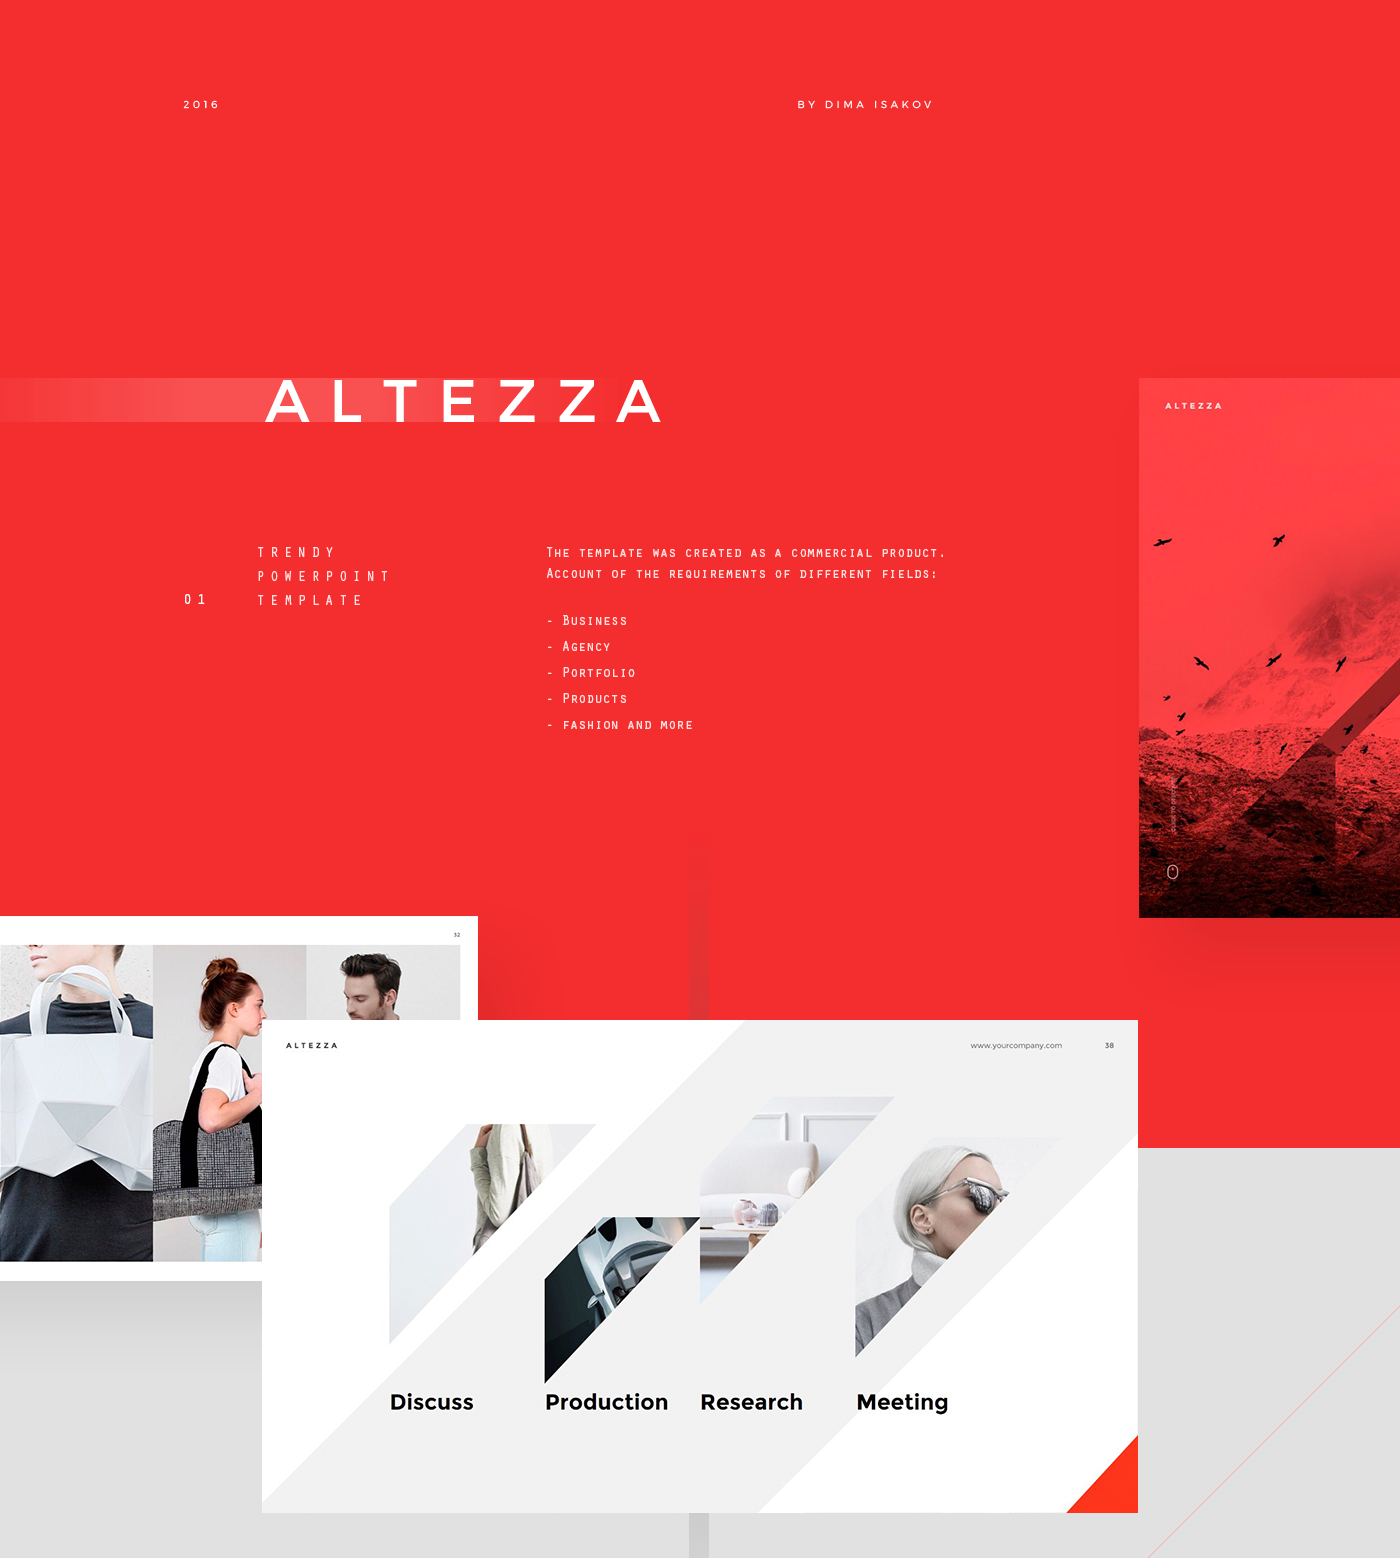 altezza powerpoint template on behance, Presentation templates